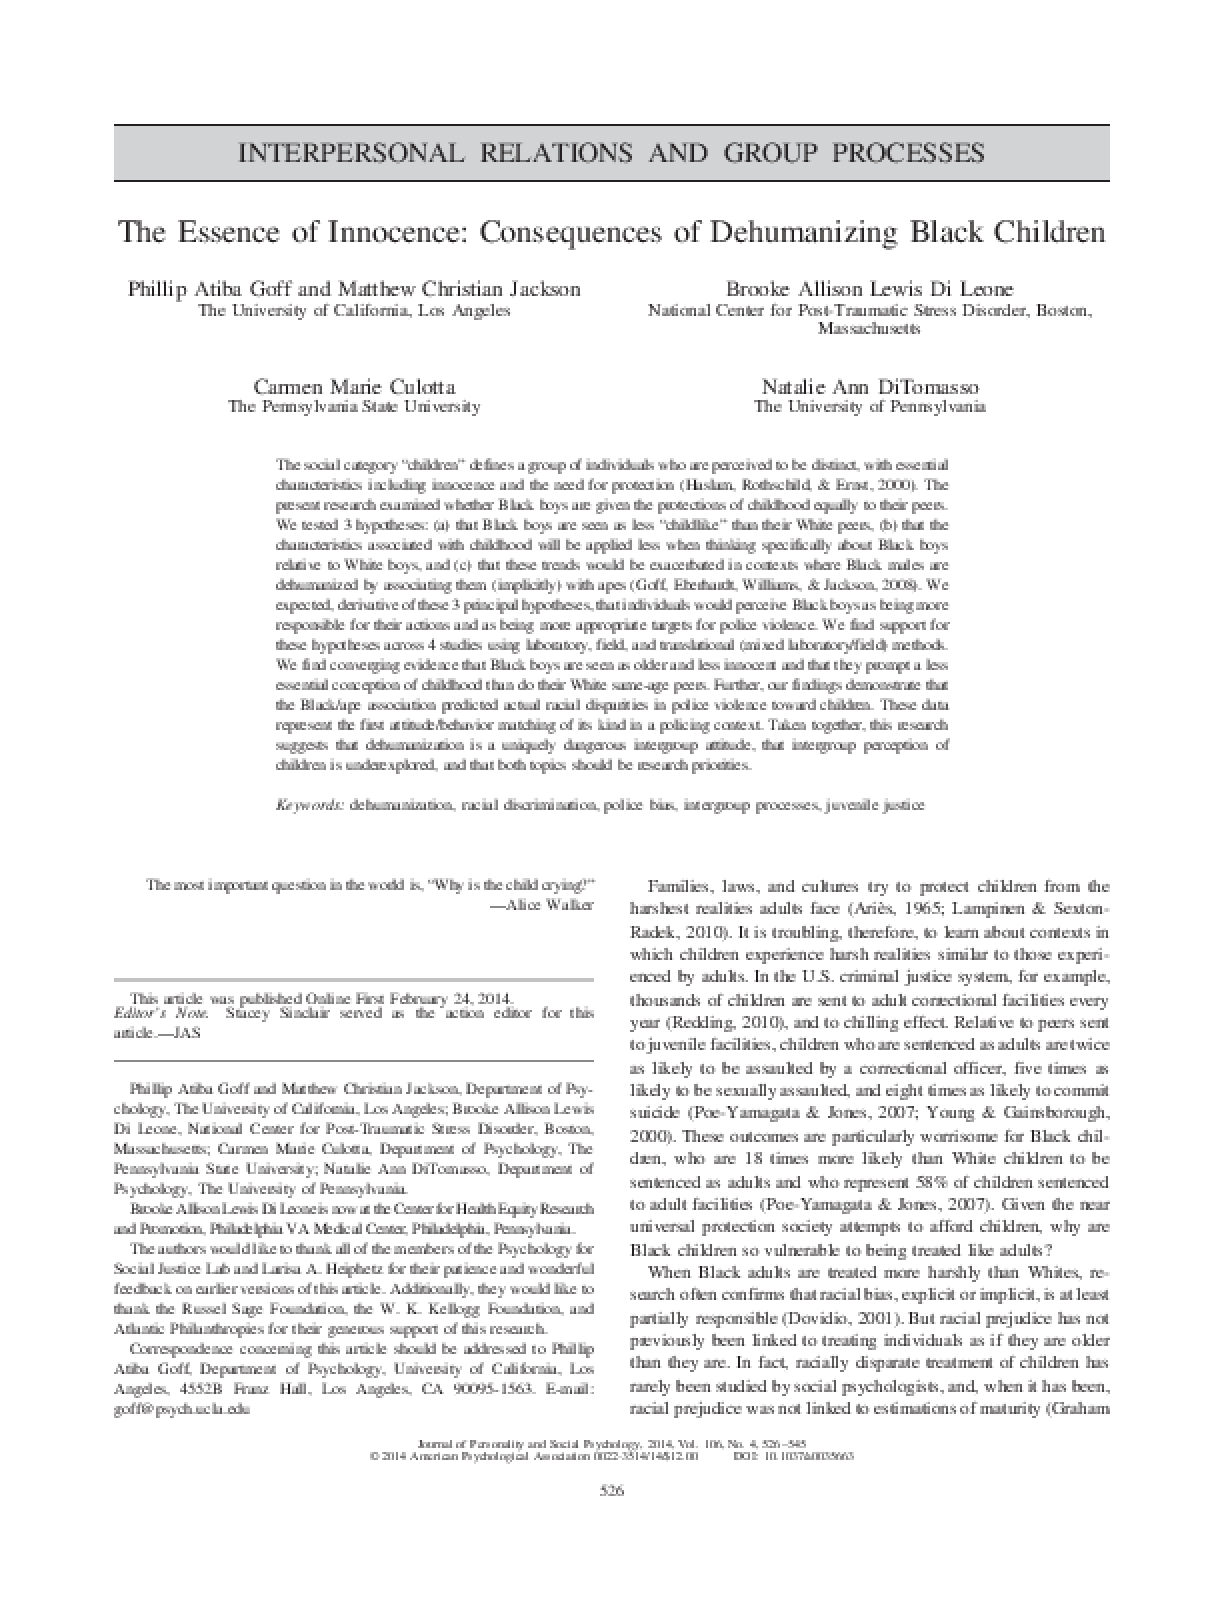 psychologists hypothesis on the penile system and its dehumanizing effects on prisoners